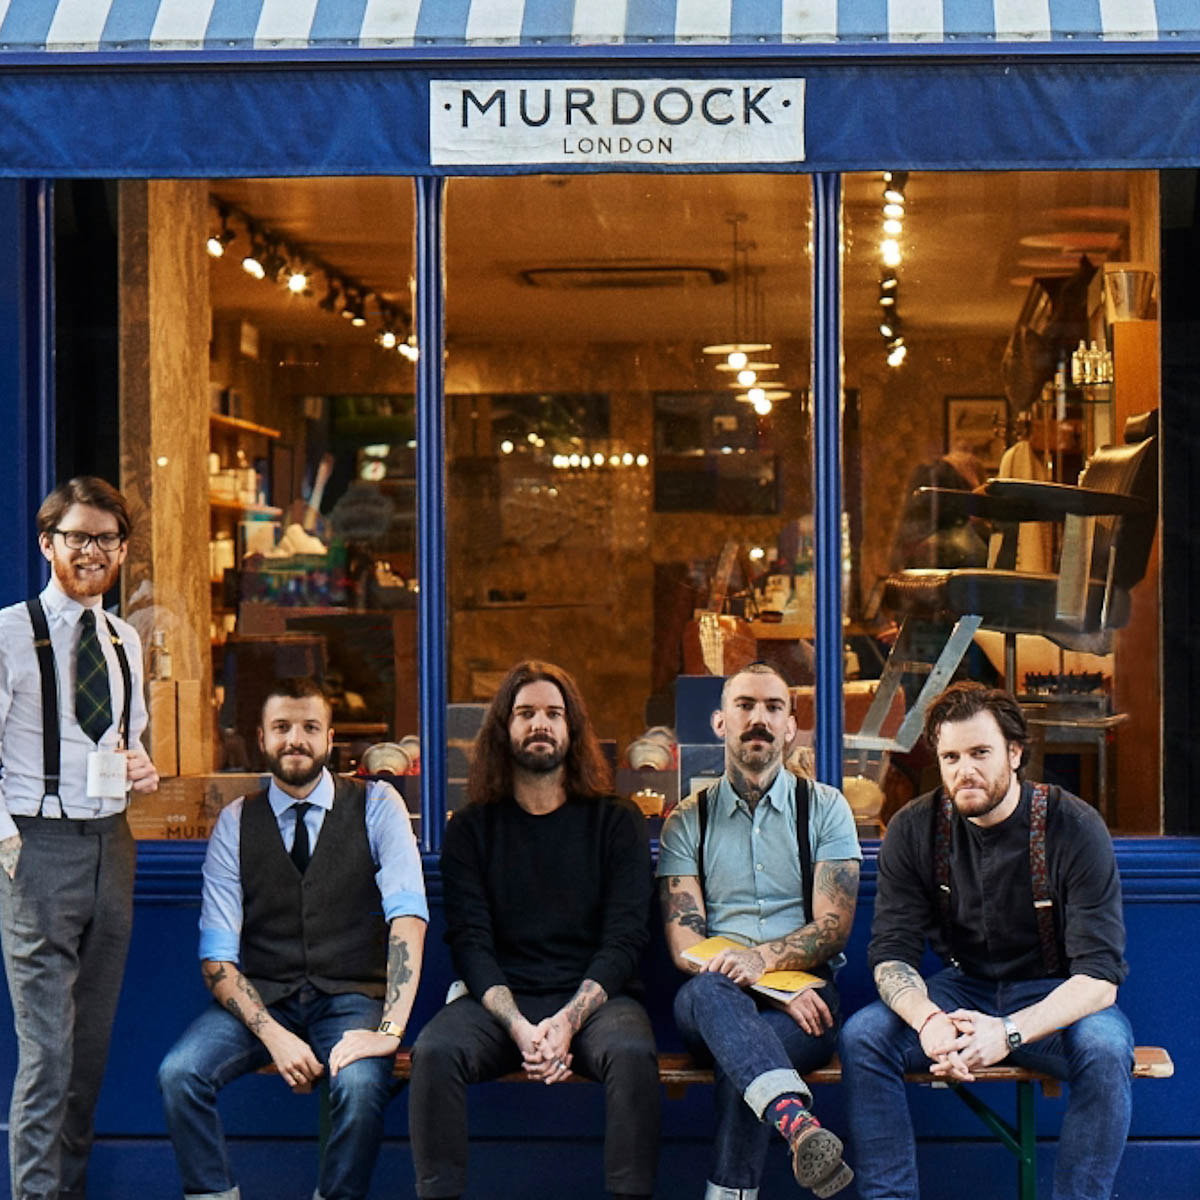 murdock-london-best-barbershop-london-man-for-himself